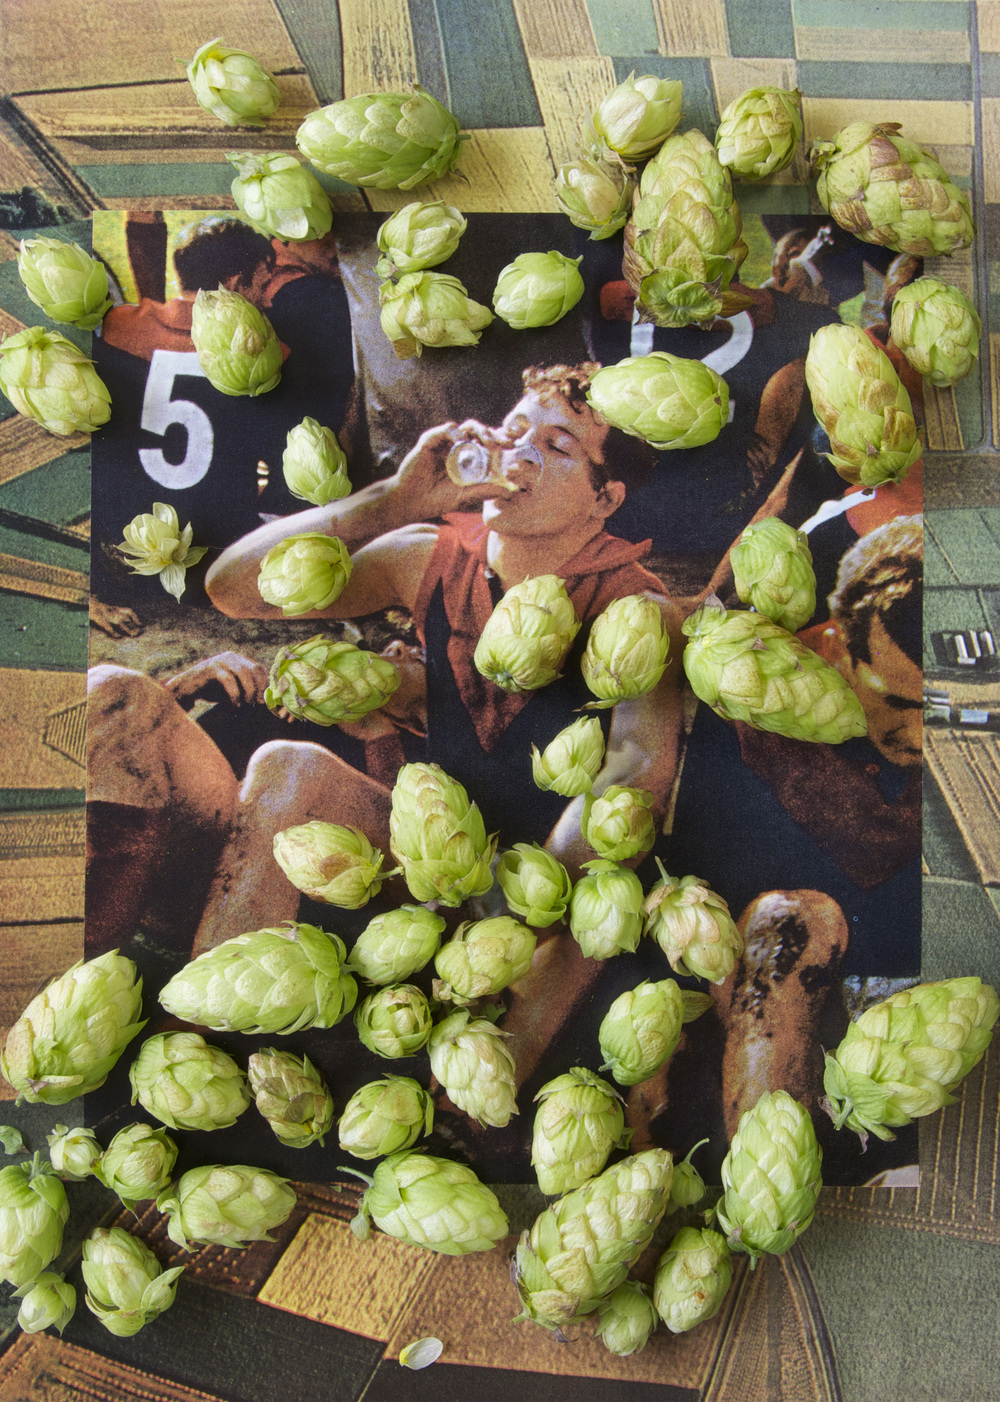 Ultrachrome print of collage and hops SOLD